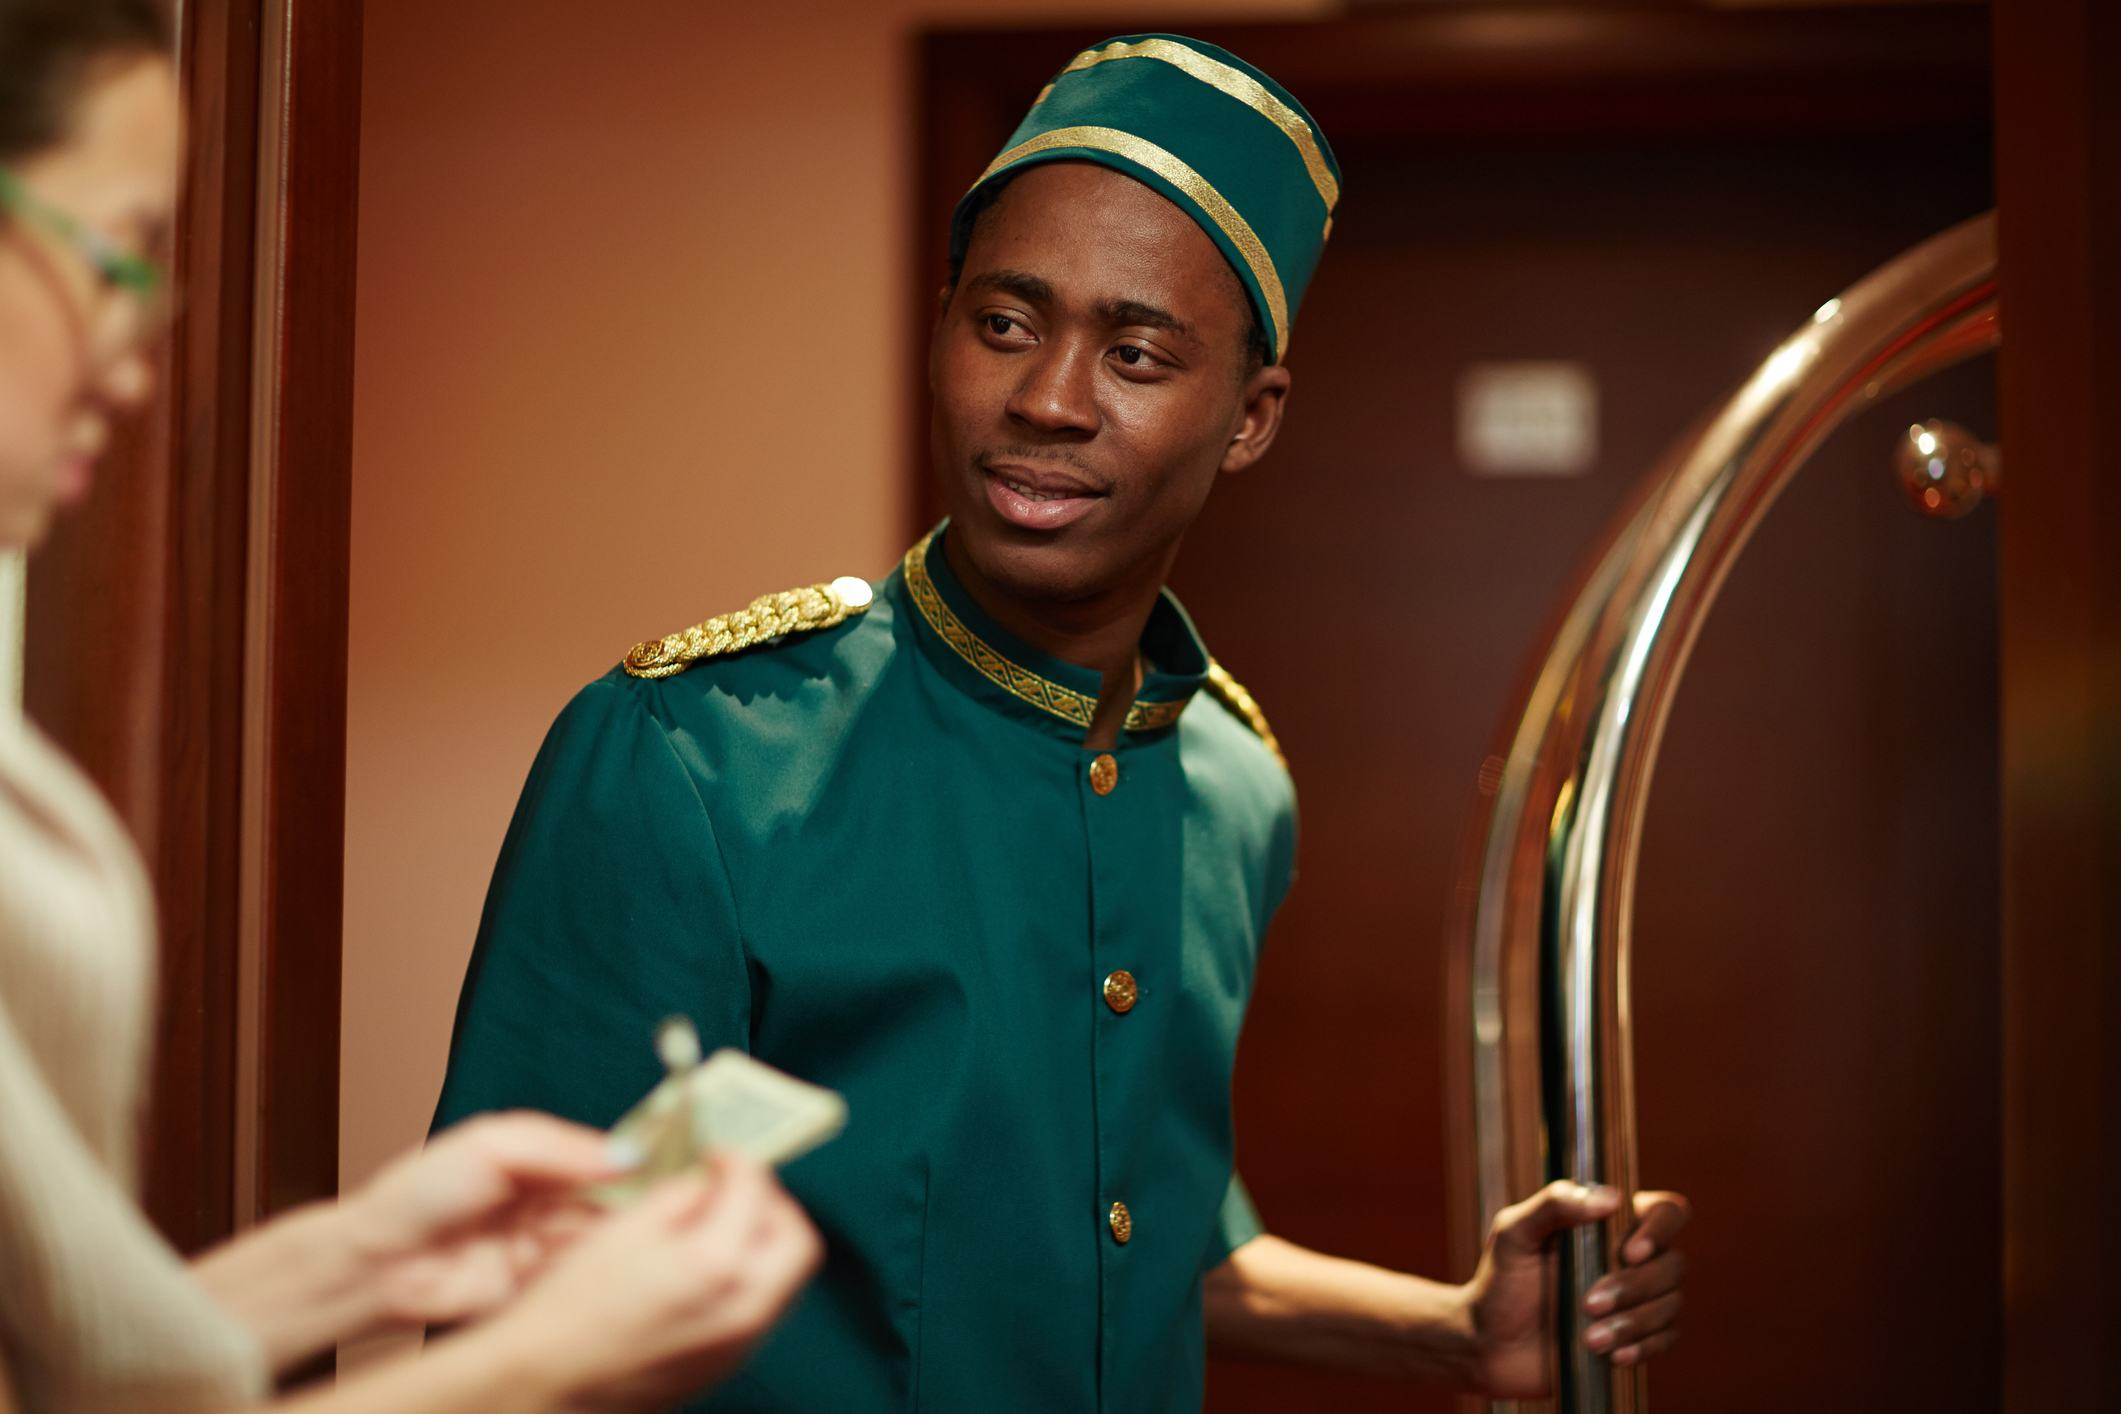 Bellboy Getting Tips from Guests